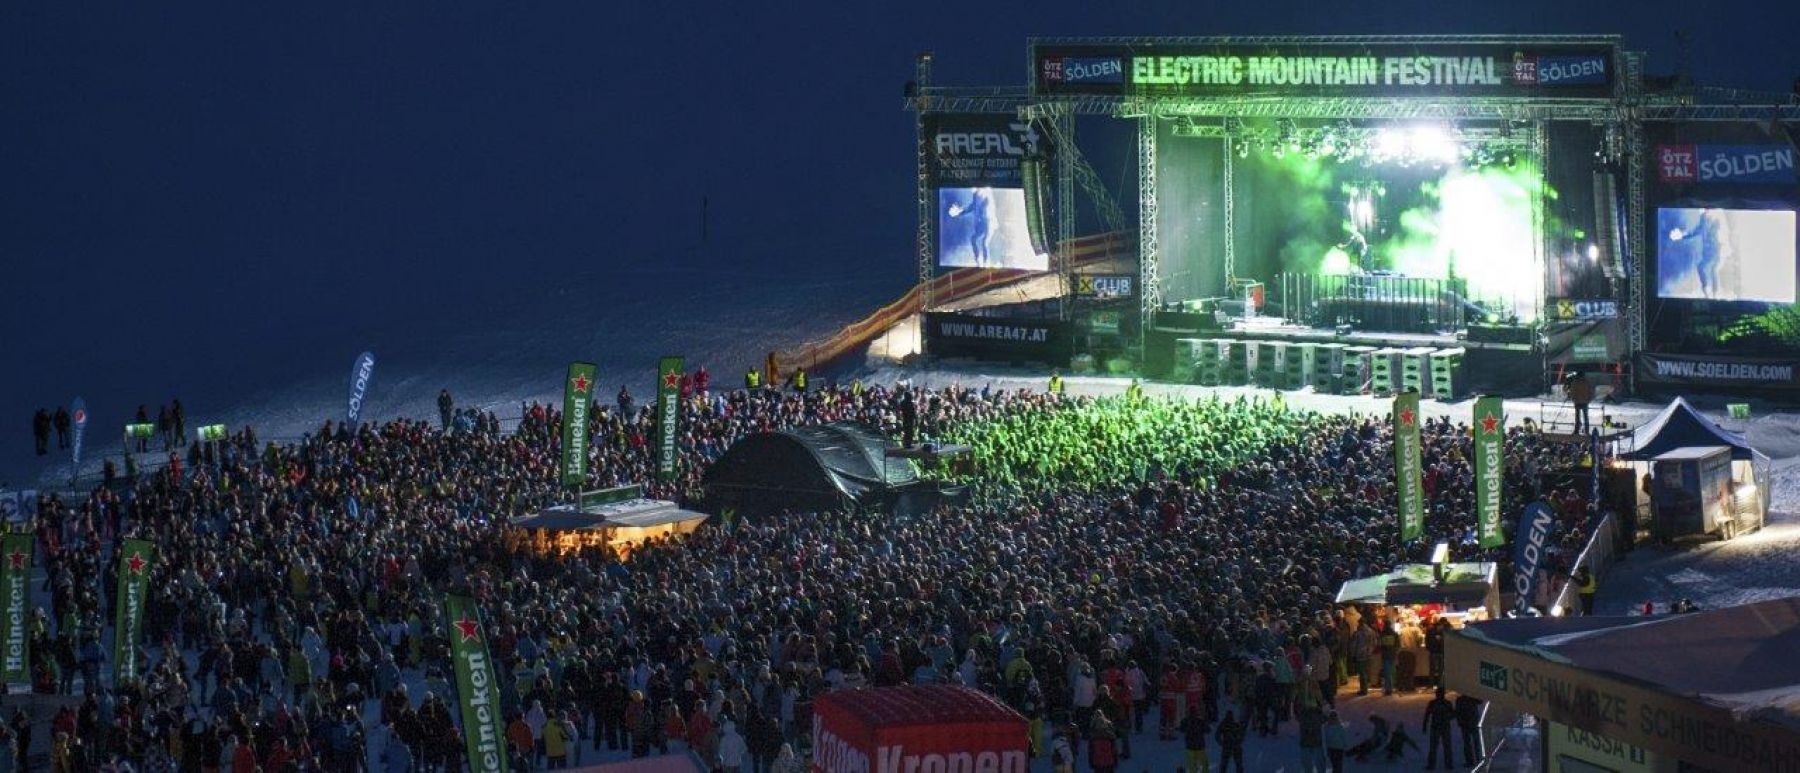 Electric Mountain Festival in Sölden